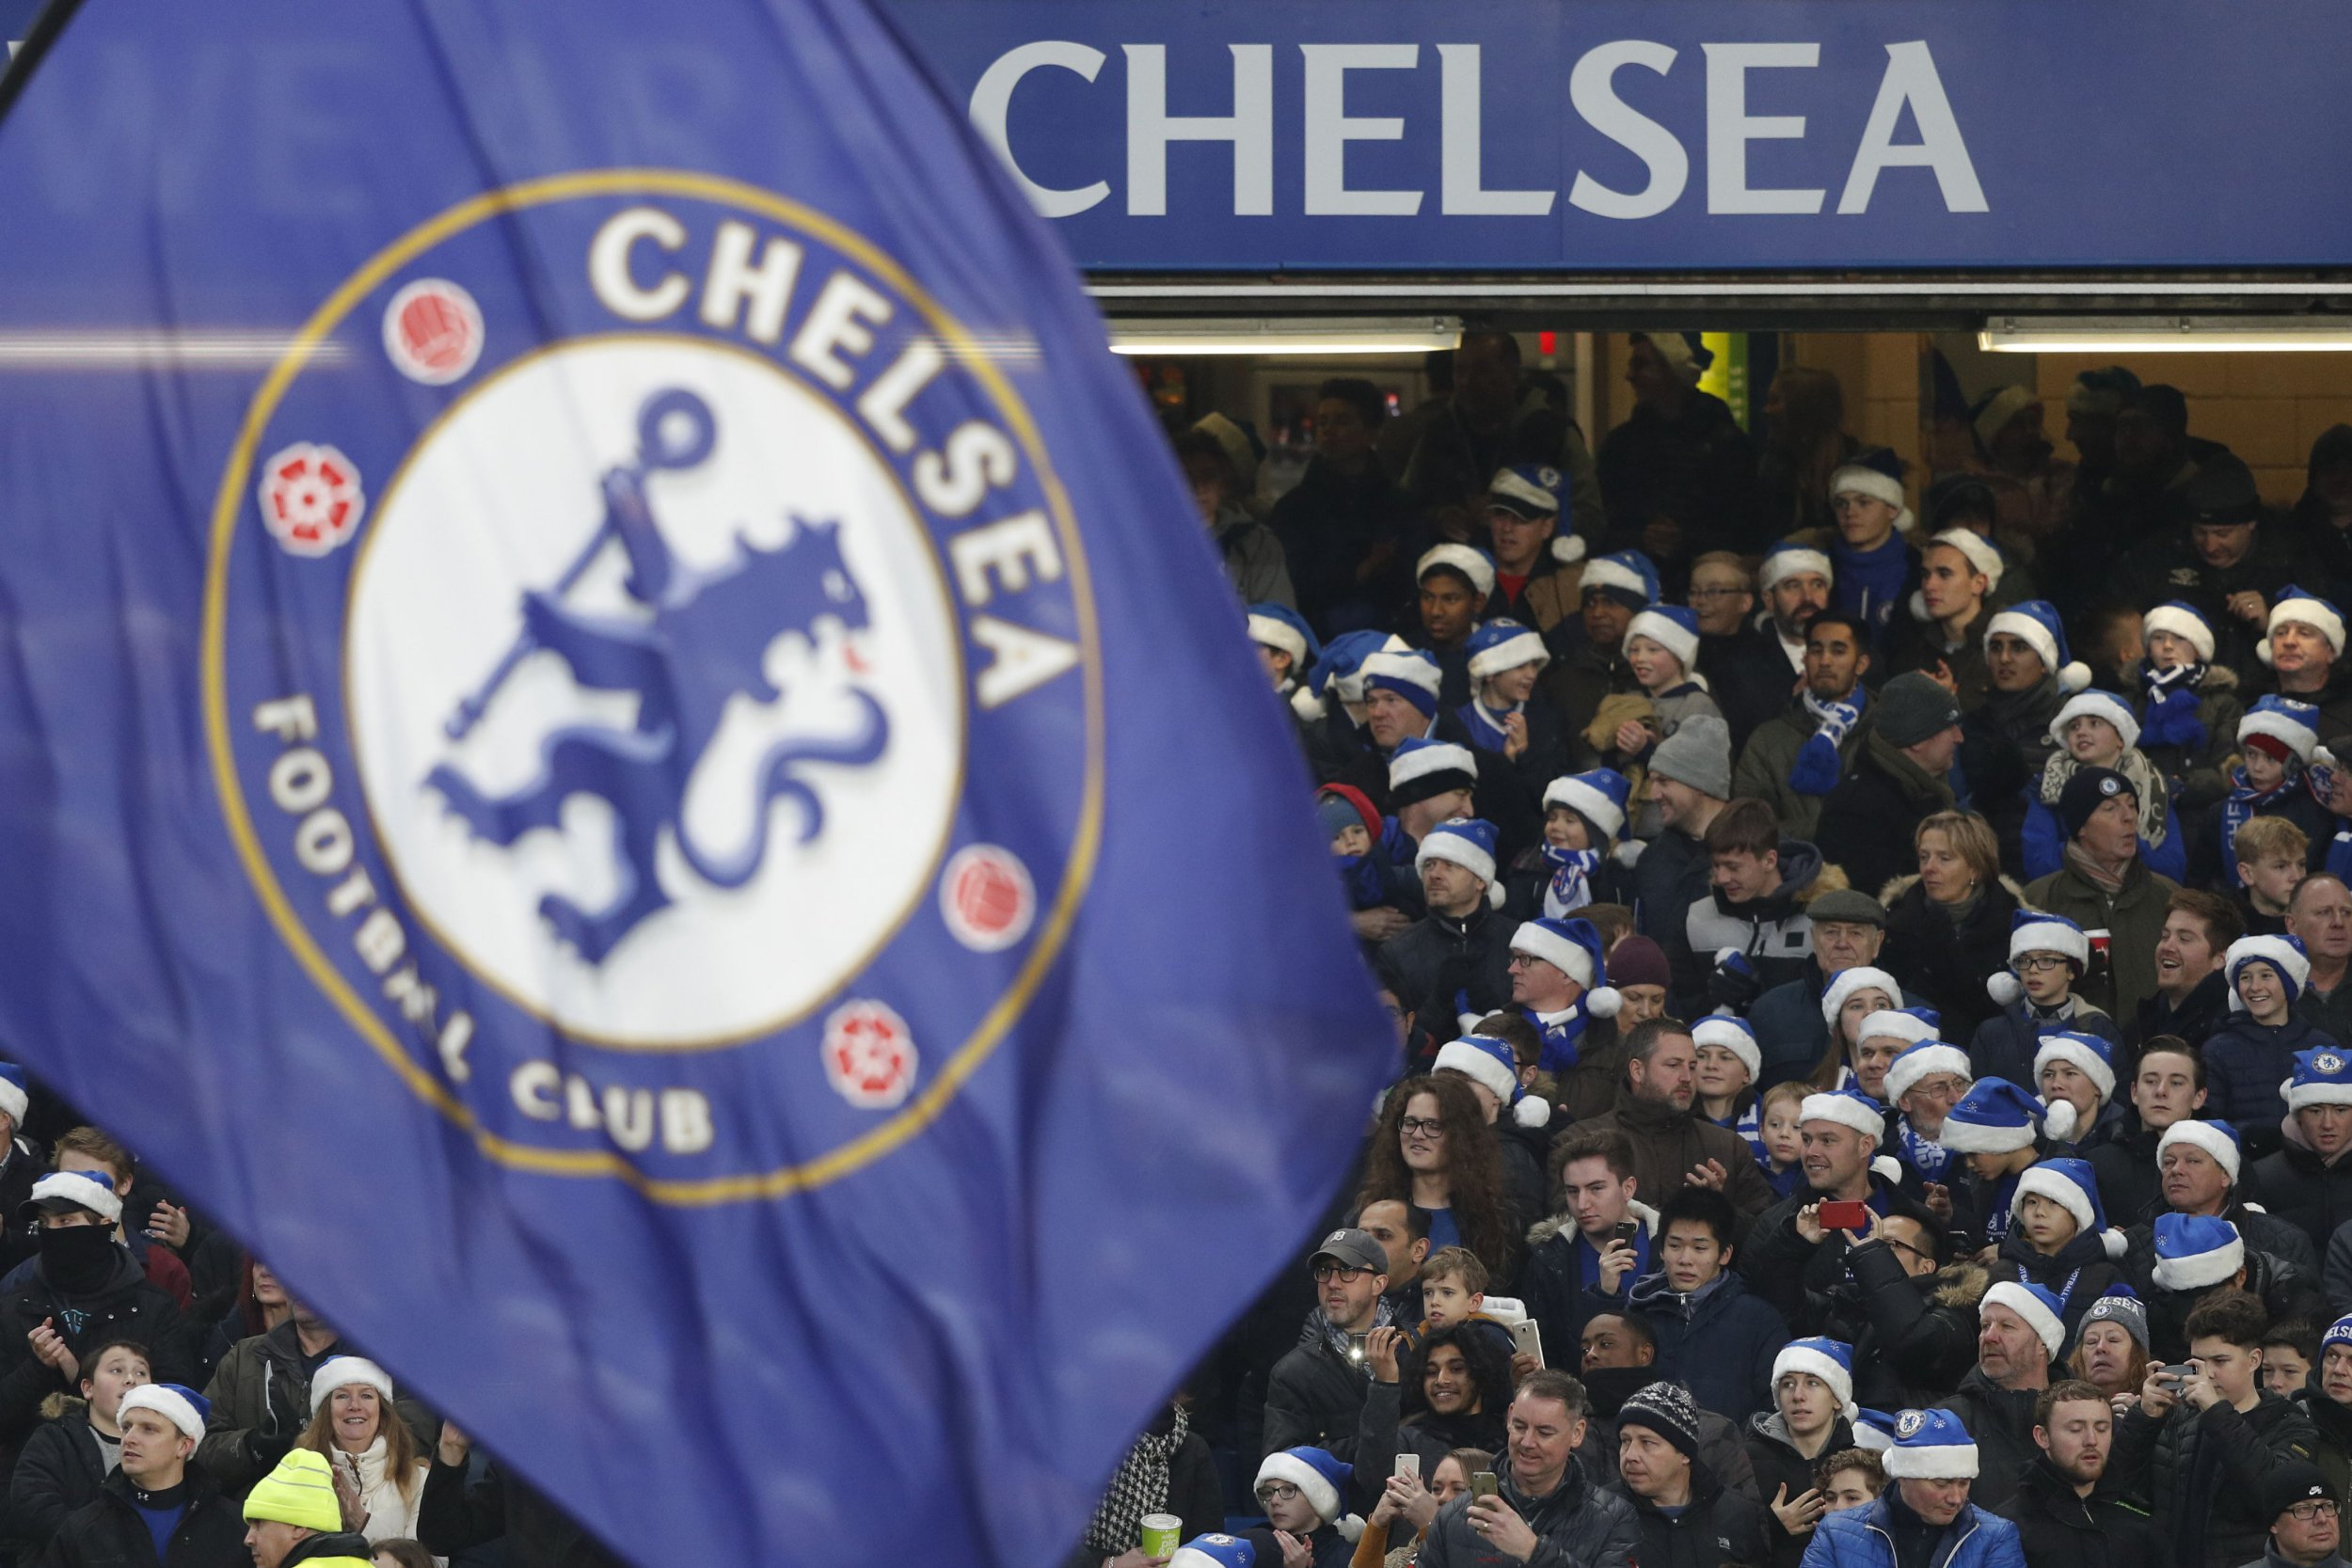 Chelsea fans wear blue santa hats during the English Premier League football match between Chelsea and Southampton at Stamford Bridge in London on December 16, 2017. (Photo by Adrian DENNIS / AFP) / RESTRICTED TO EDITORIAL USE. No use with unauthorized audio, video, data, fixture lists, club/league logos or 'live' services. Online in-match use limited to 75 images, no video emulation. No use in betting, games or single club/league/player publications. / (Photo credit should read ADRIAN DENNIS/AFP/Getty Images)